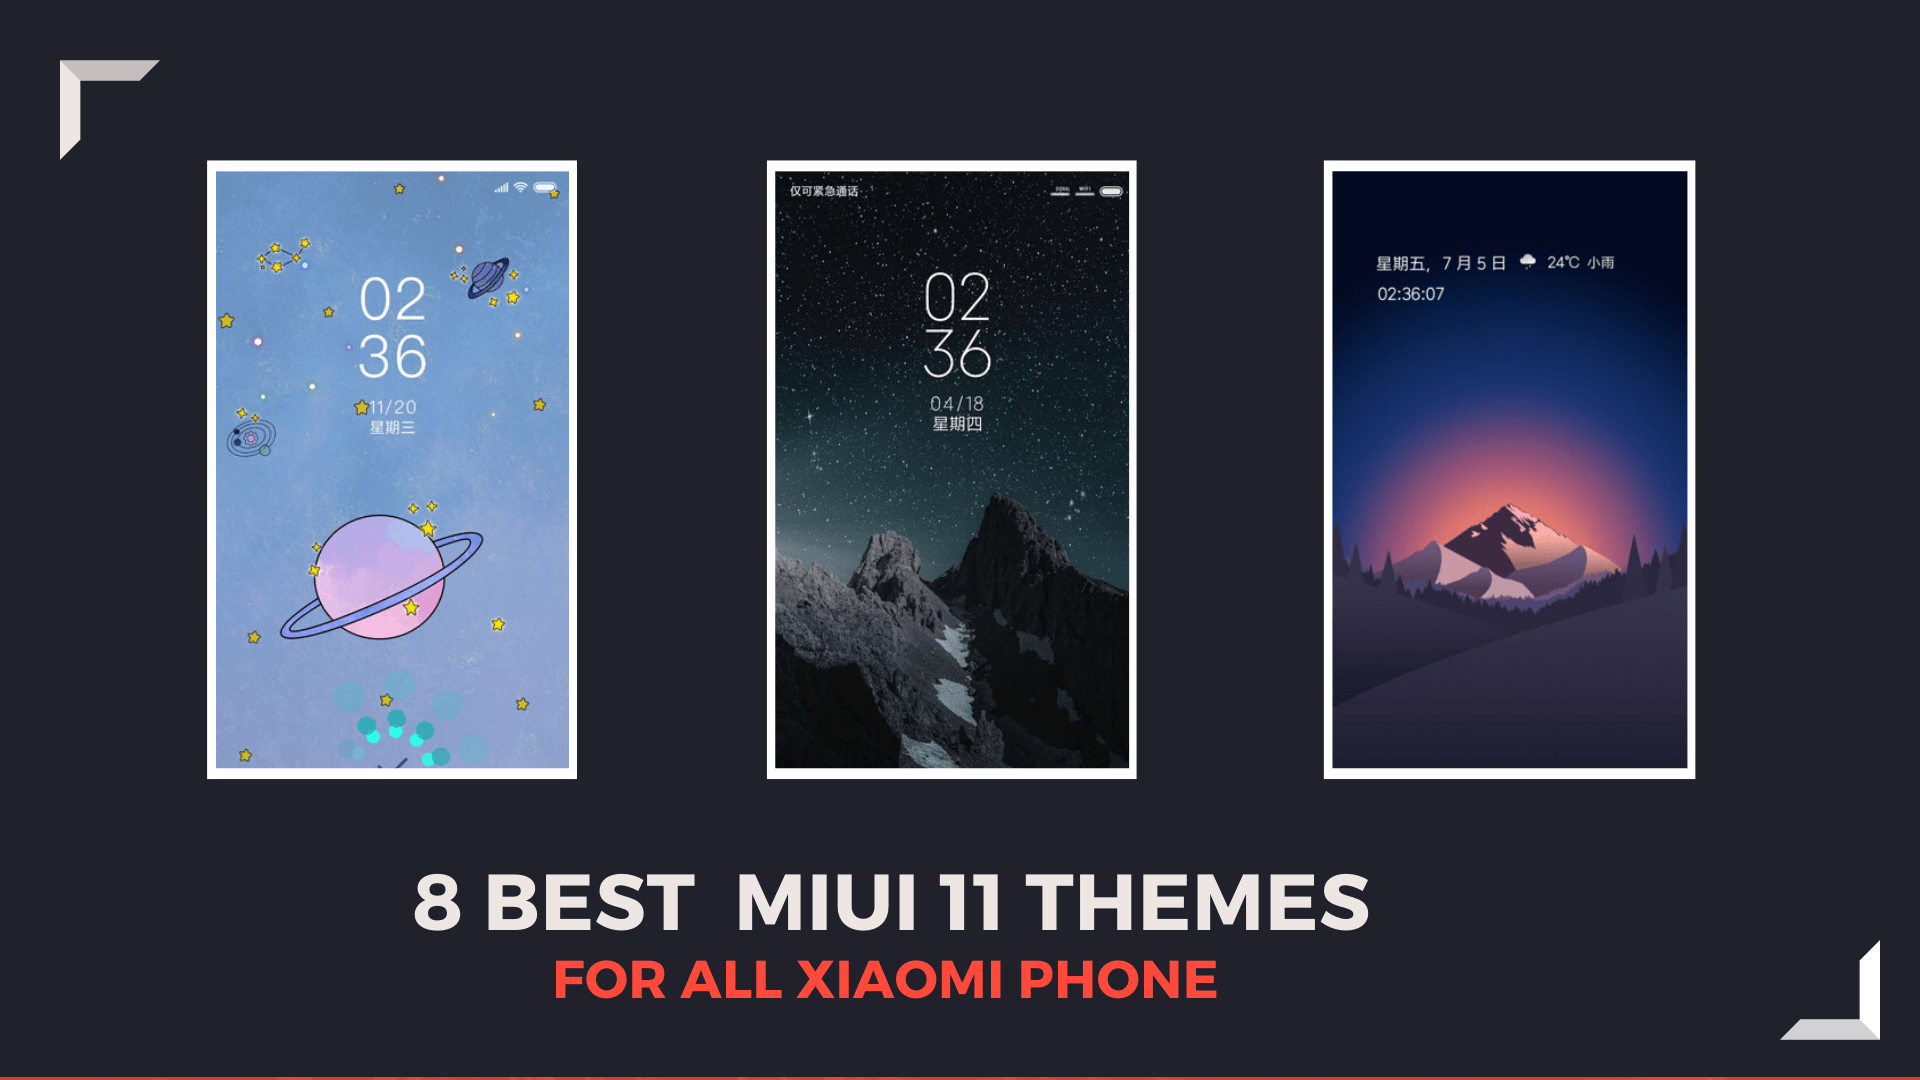 8 Best MIUI 11 Themes